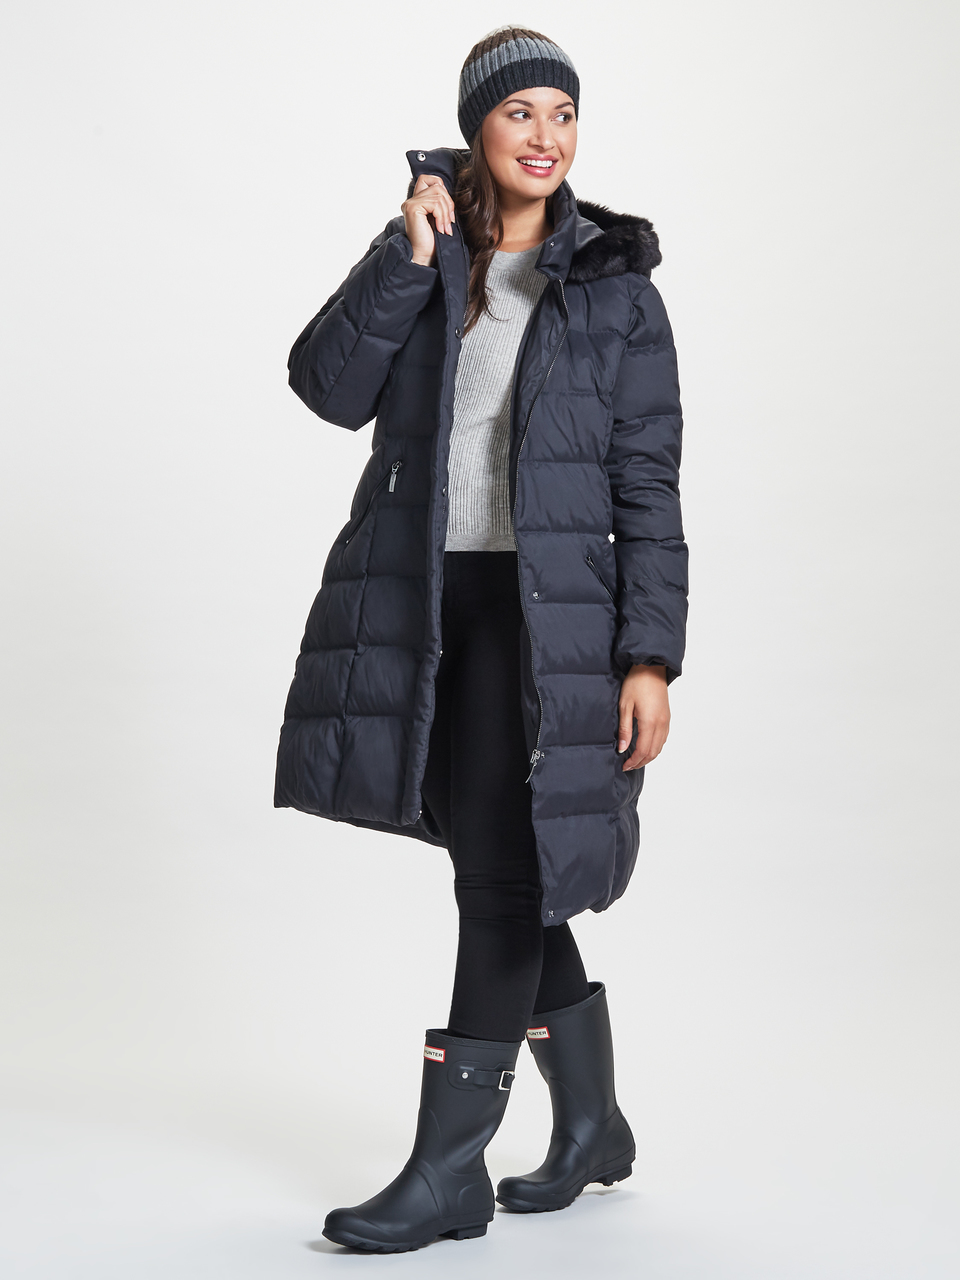 ^ The puffer coats are all 60% down and 40% feather, with fleece lined pockets.